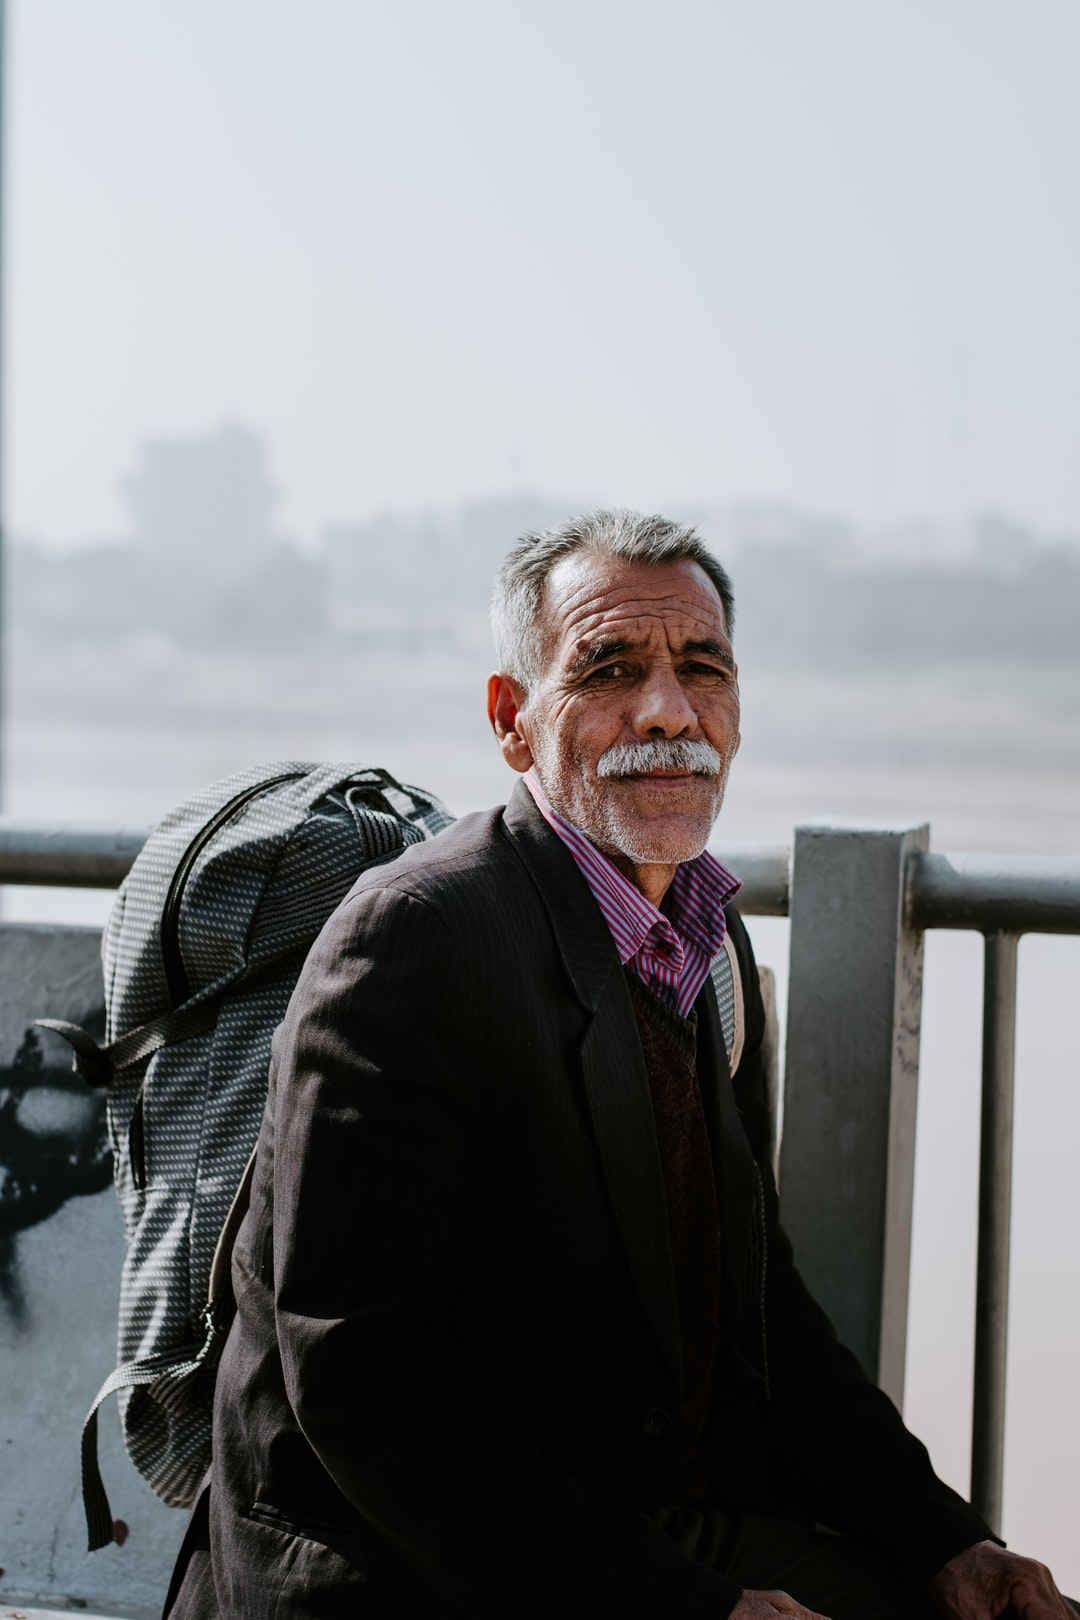 A traveler from Mashhad with untold stories from the past